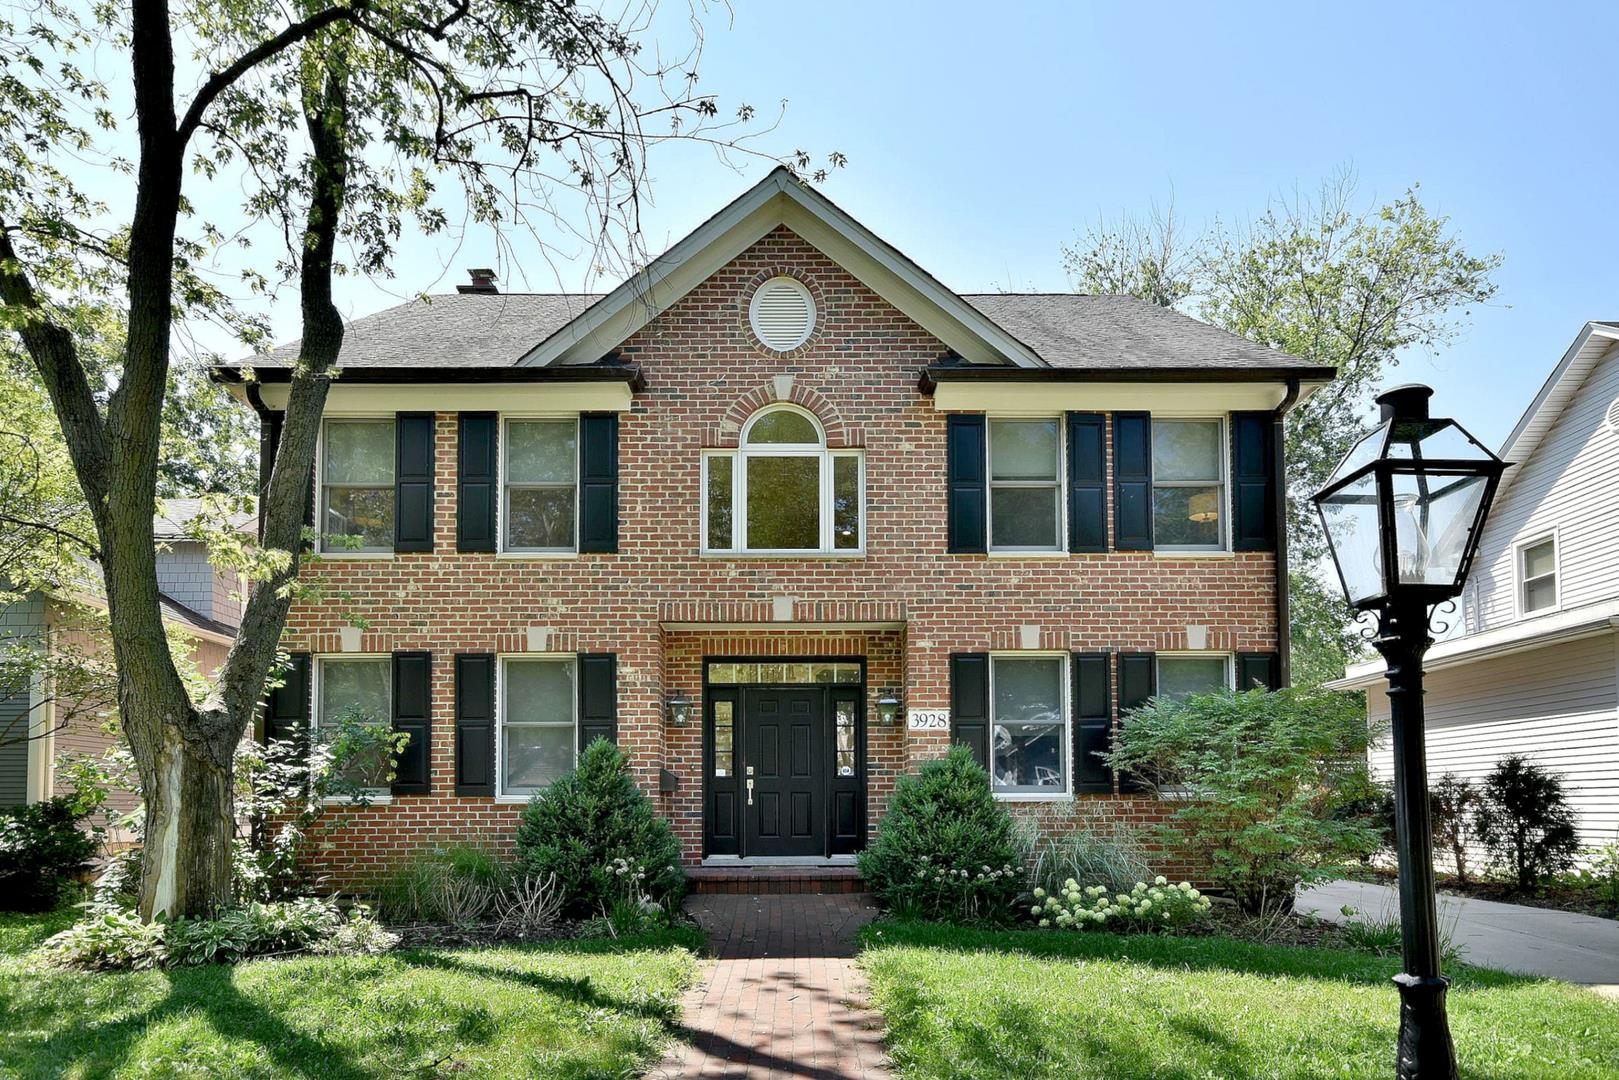 3928 Central Avenue, Western Springs, IL 60558 - #: 10969096